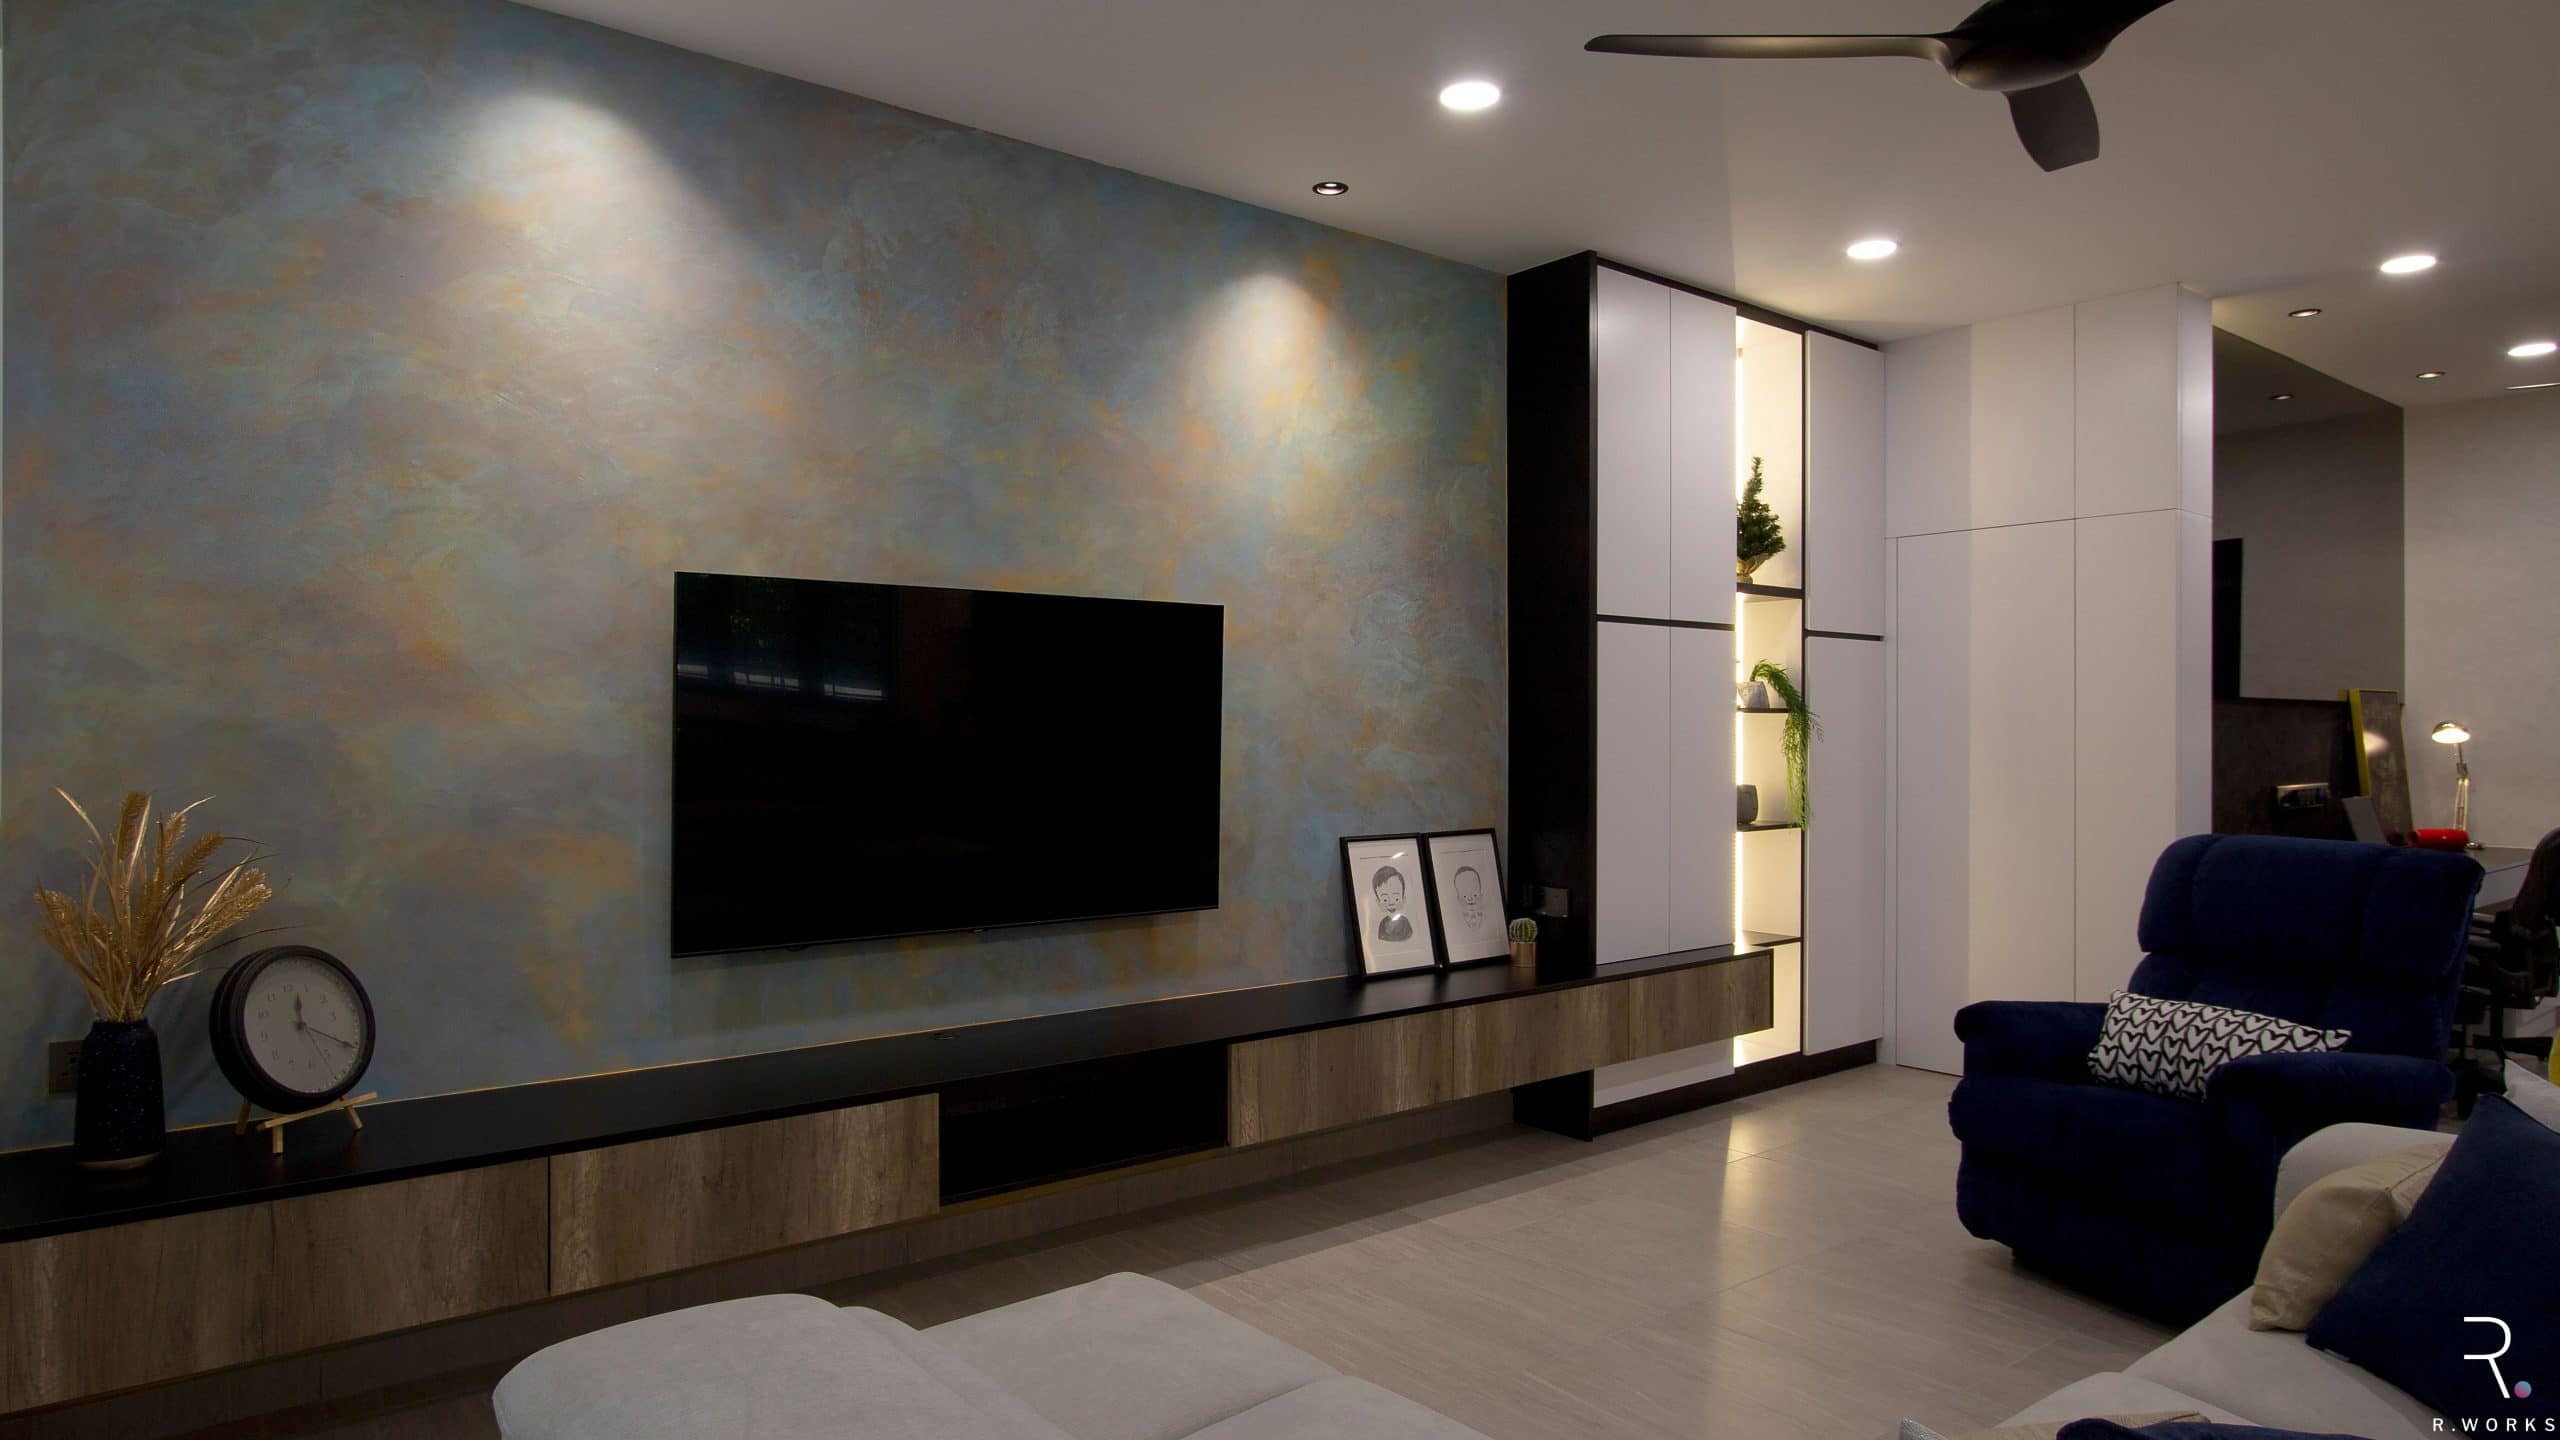 Living room feature wall, cabinetry, and storage room for townhouse interior design